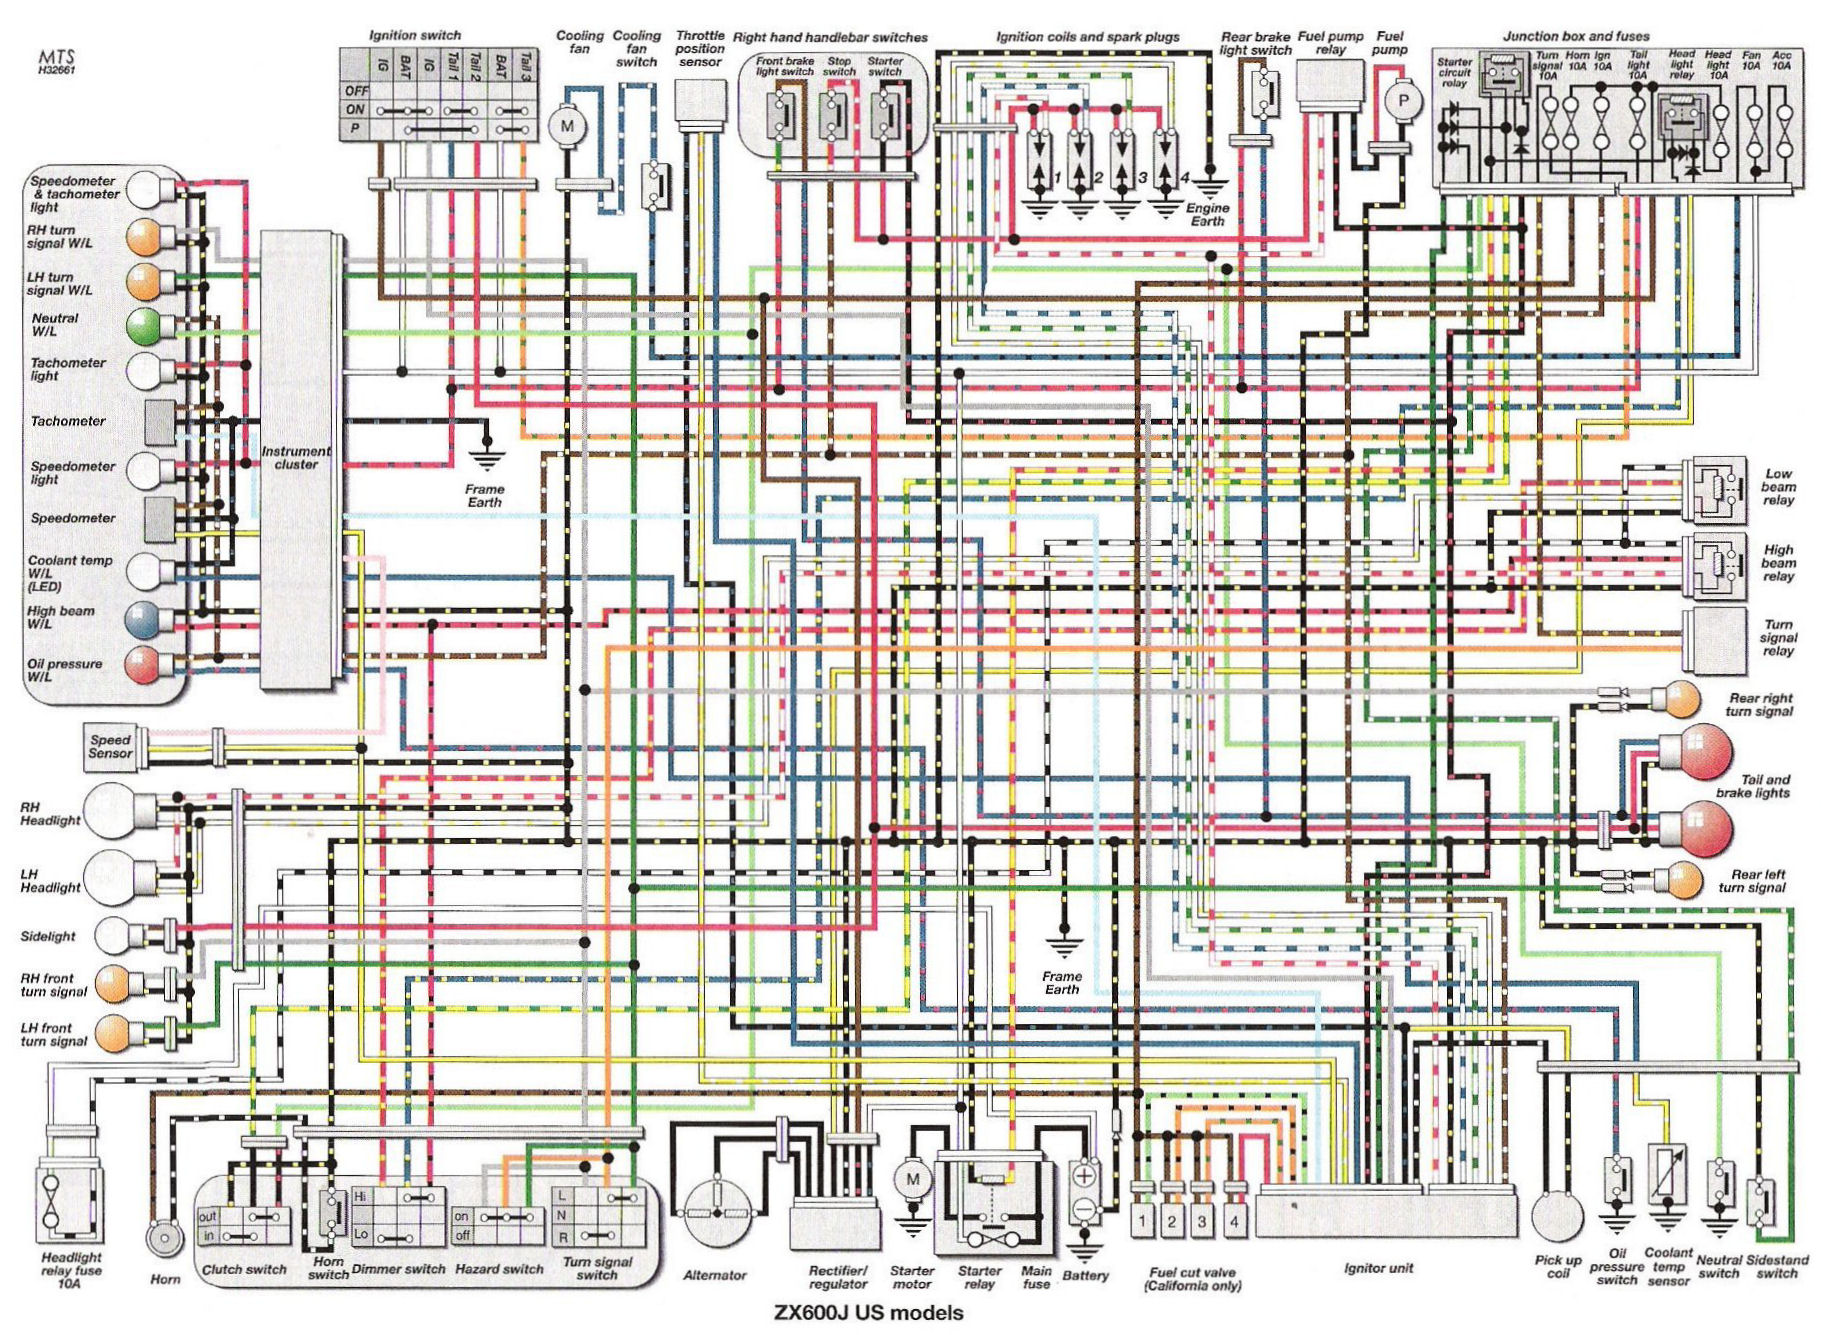 medium resolution of 2004 gsxr 600 headlight wiring diagram fantastic suzuki gsx r 600 wire diagram contemporary